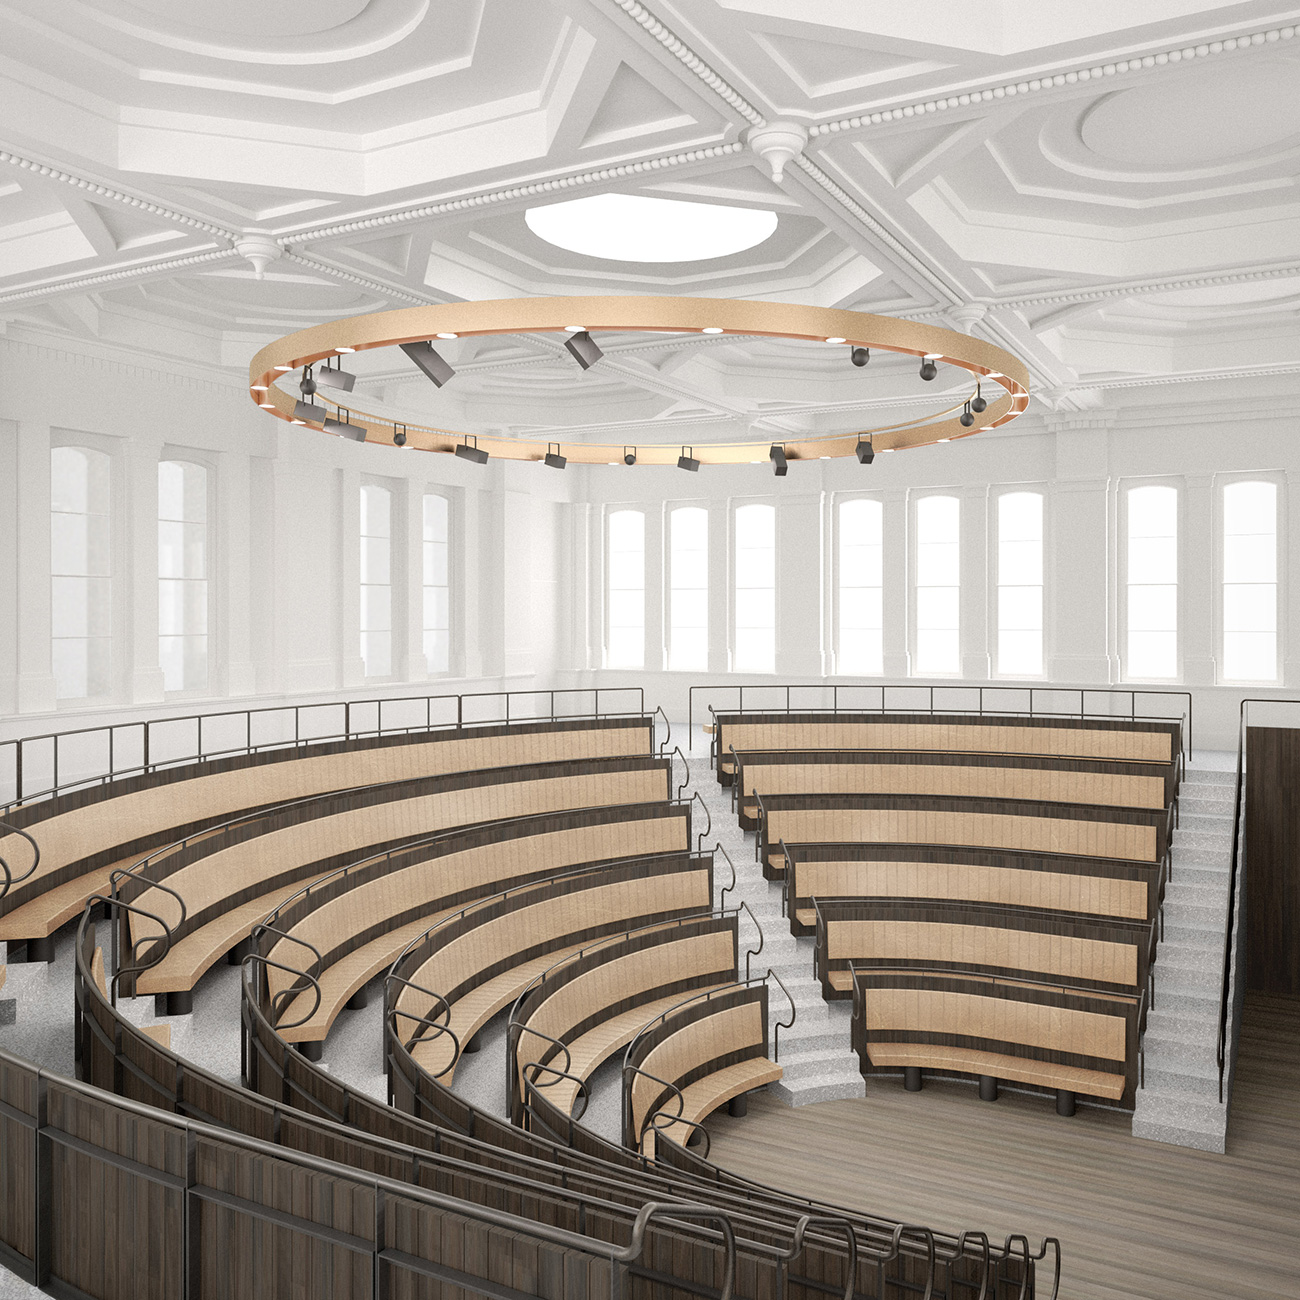 Planned lecture theatre at the Royal Academy of Arts